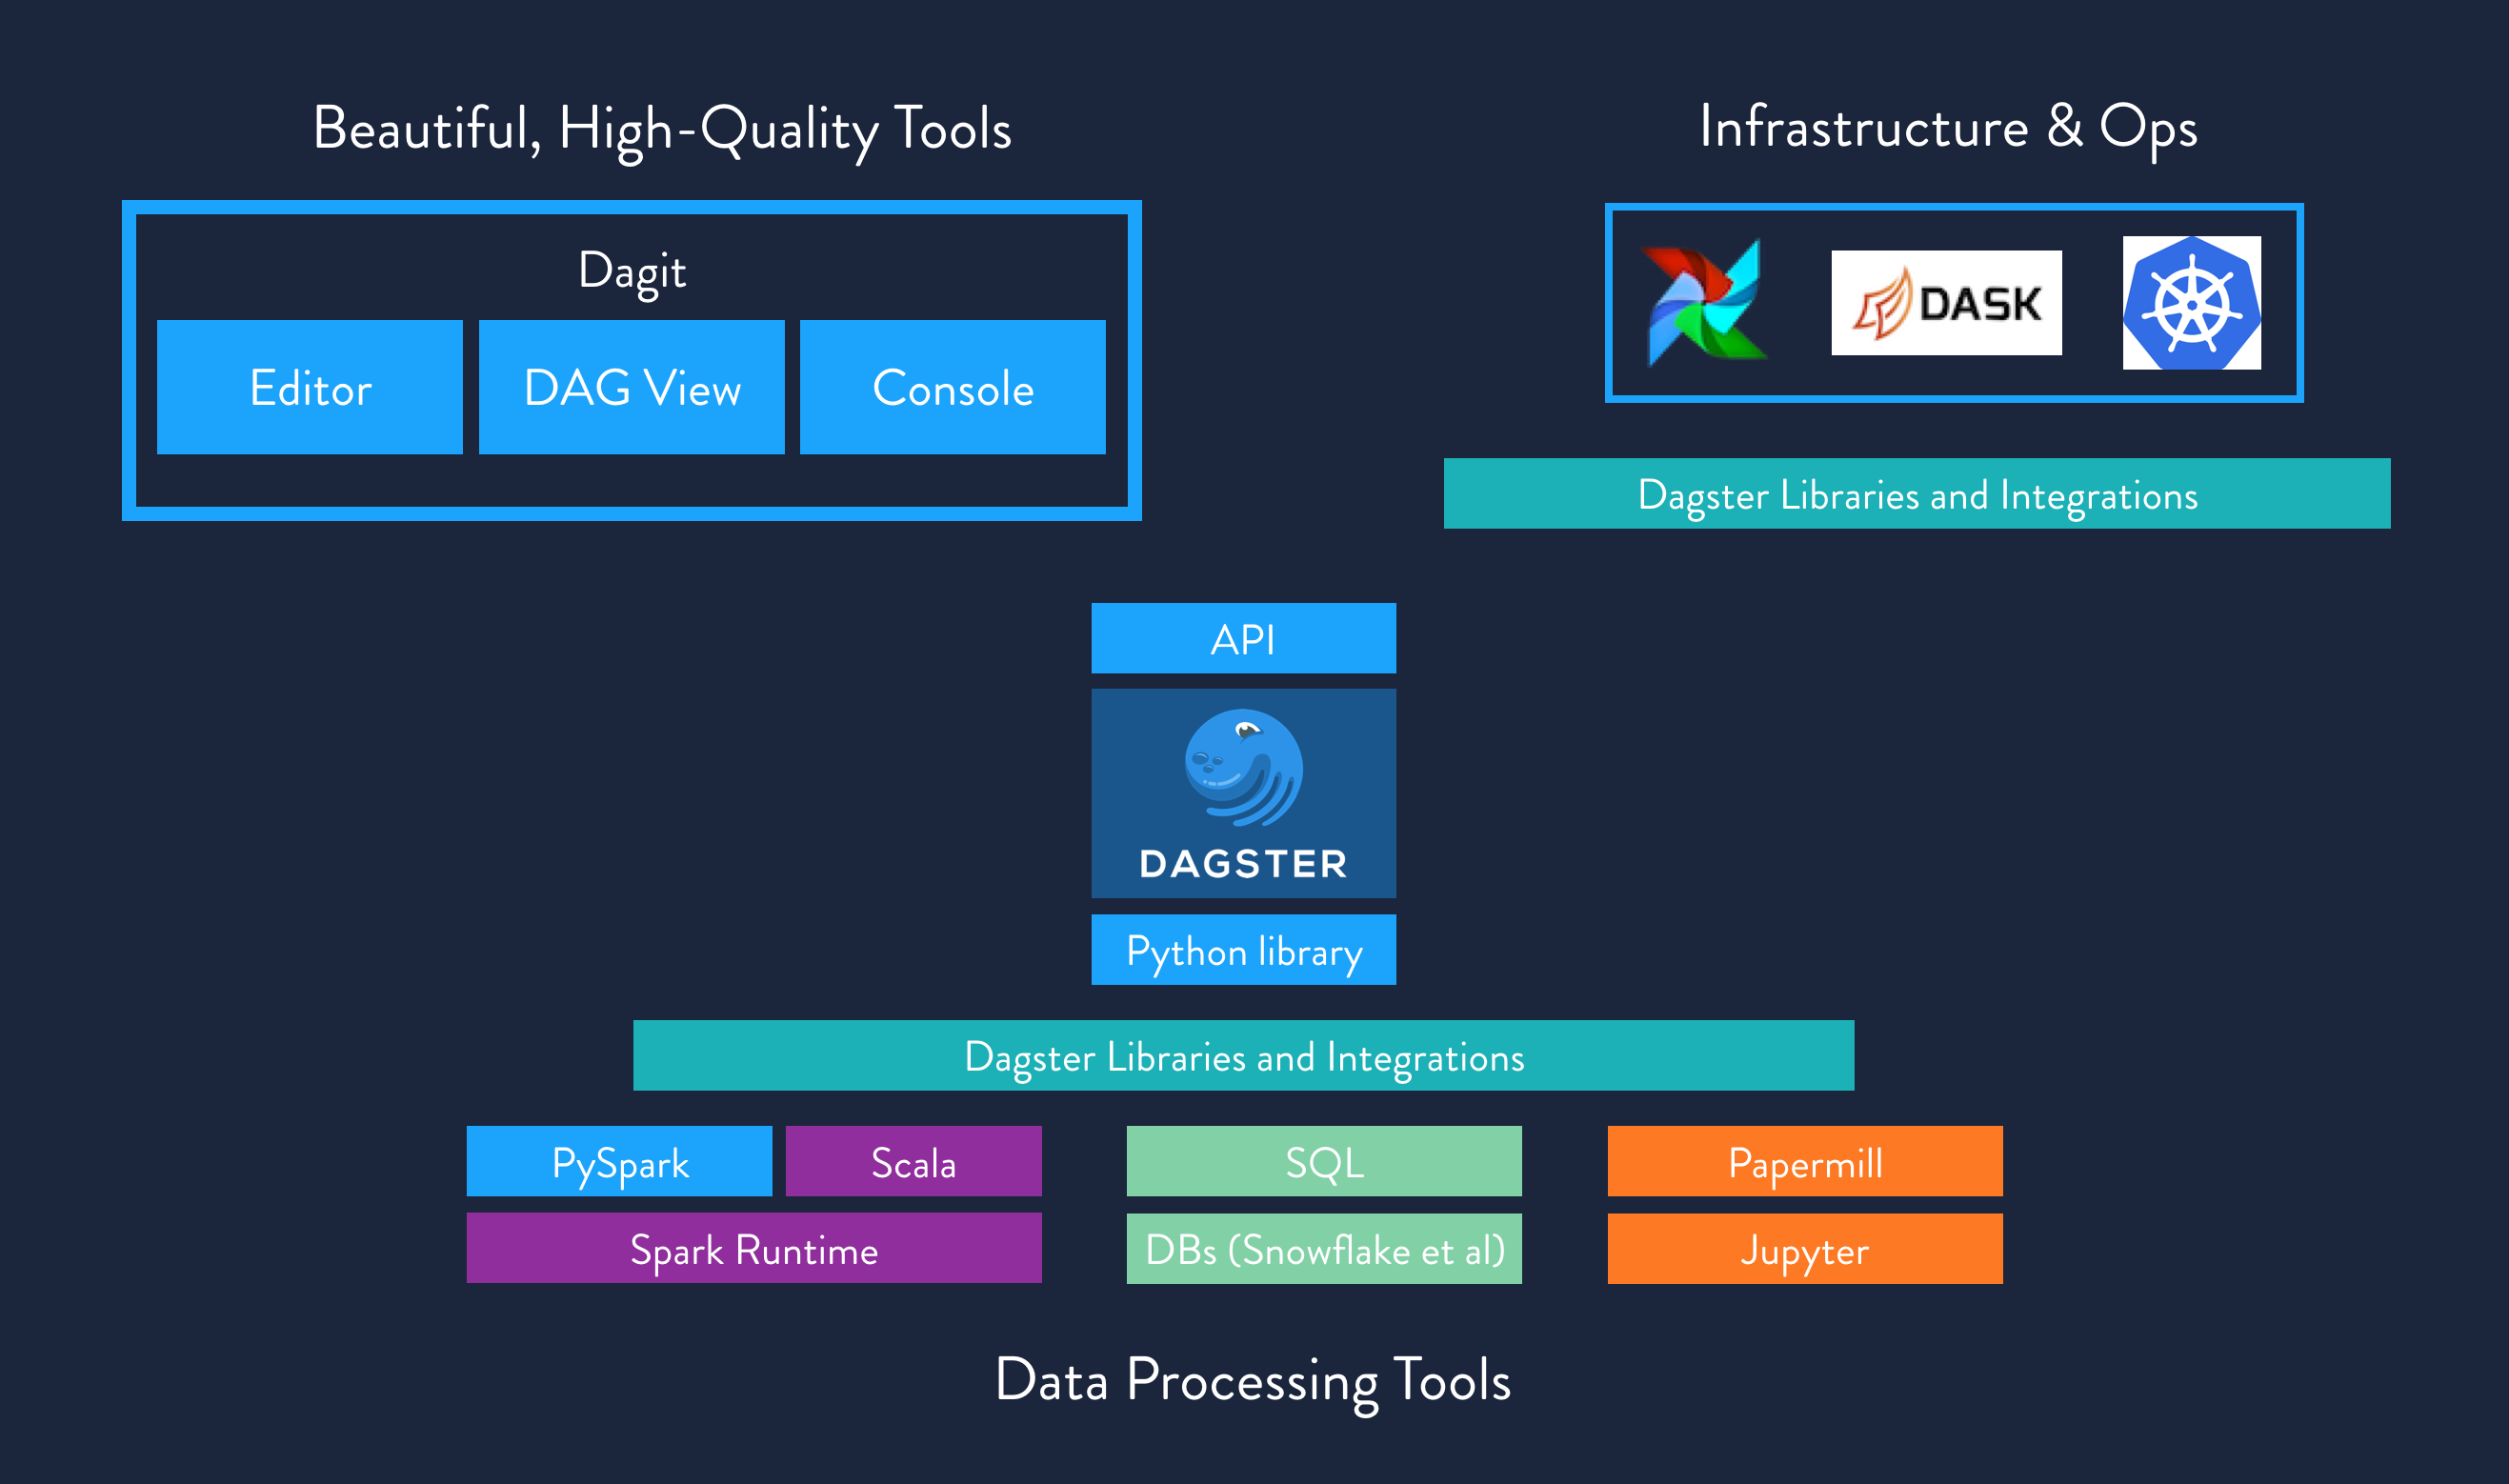 Dagster as a unifying abstraction seeks to serve as a powerful point of leverage in the data ecosystem.